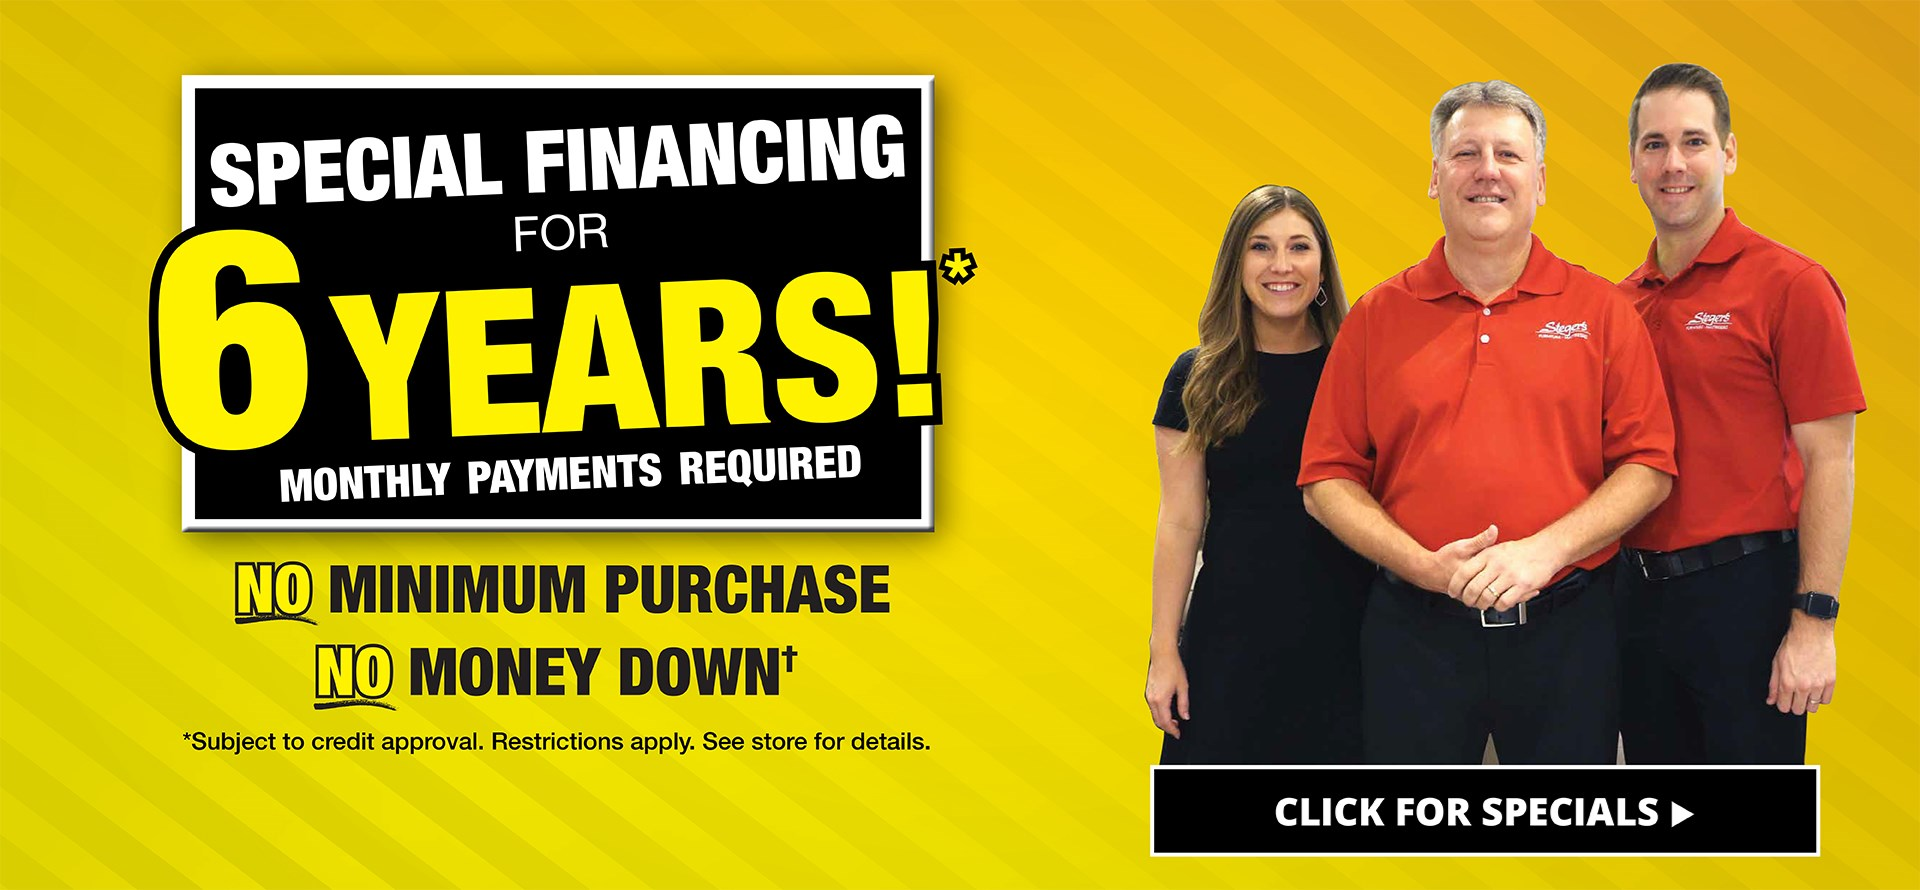 Special Financing for 6 Years!